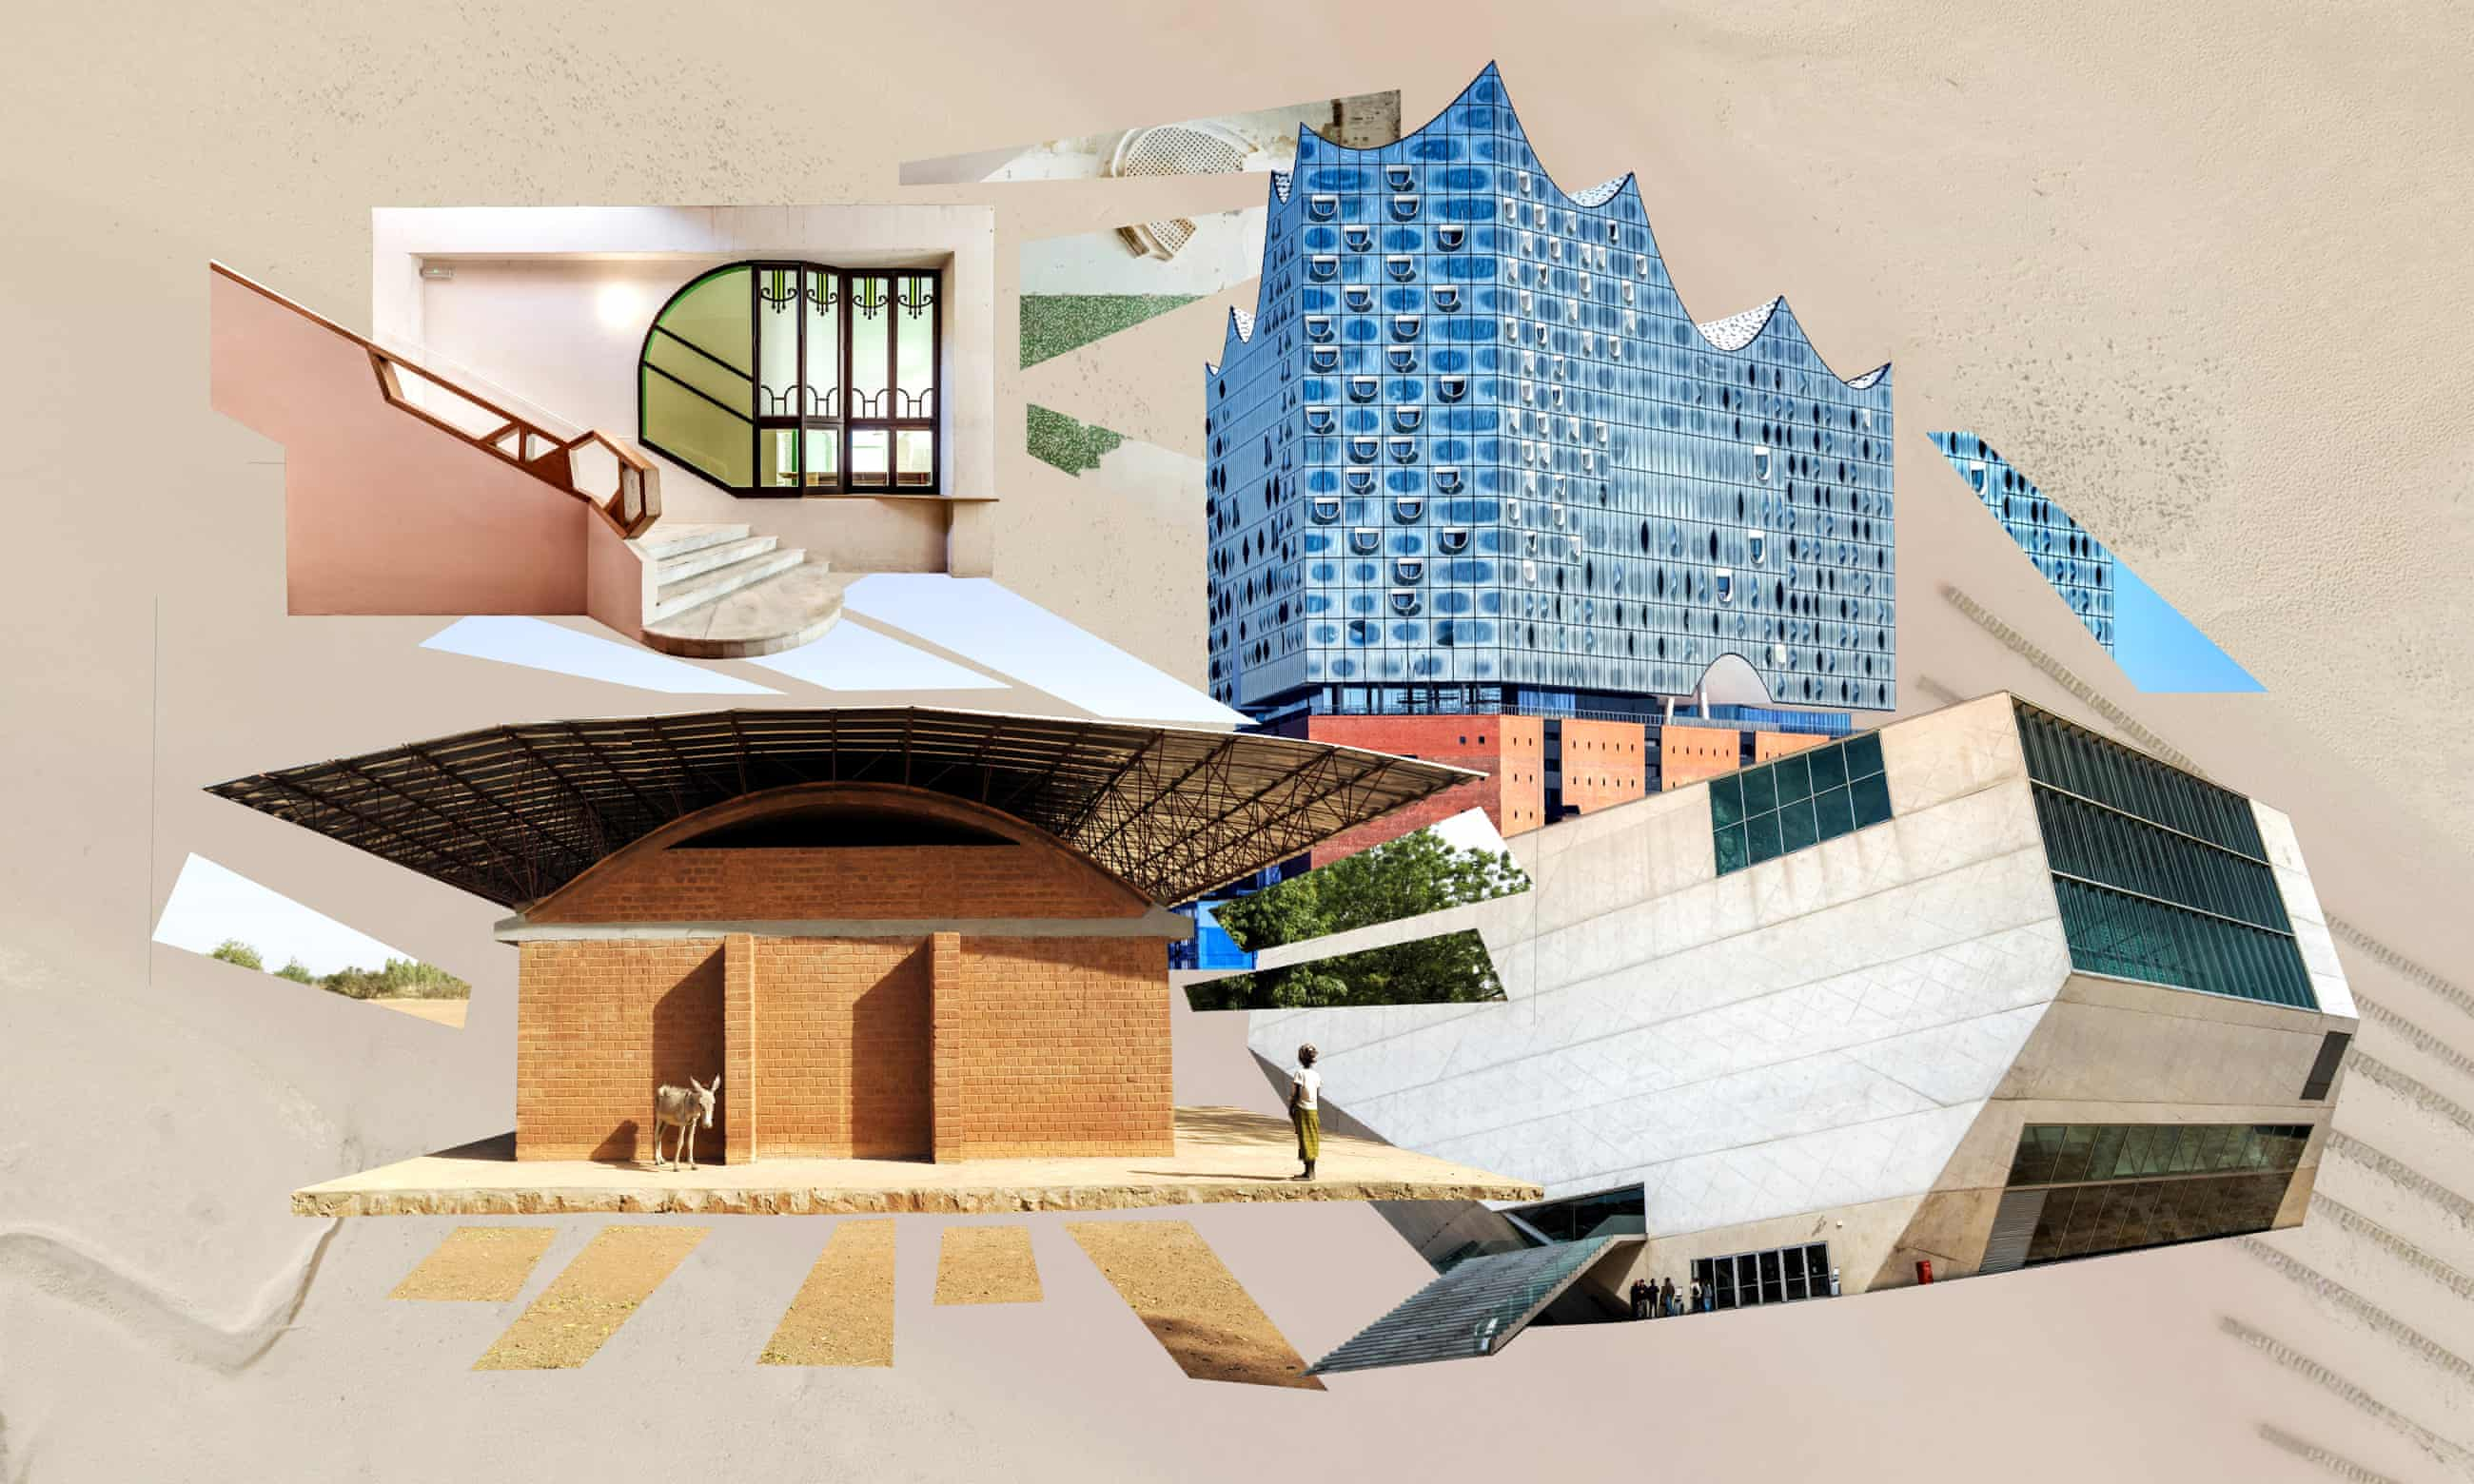 The best architecture of the 21st century